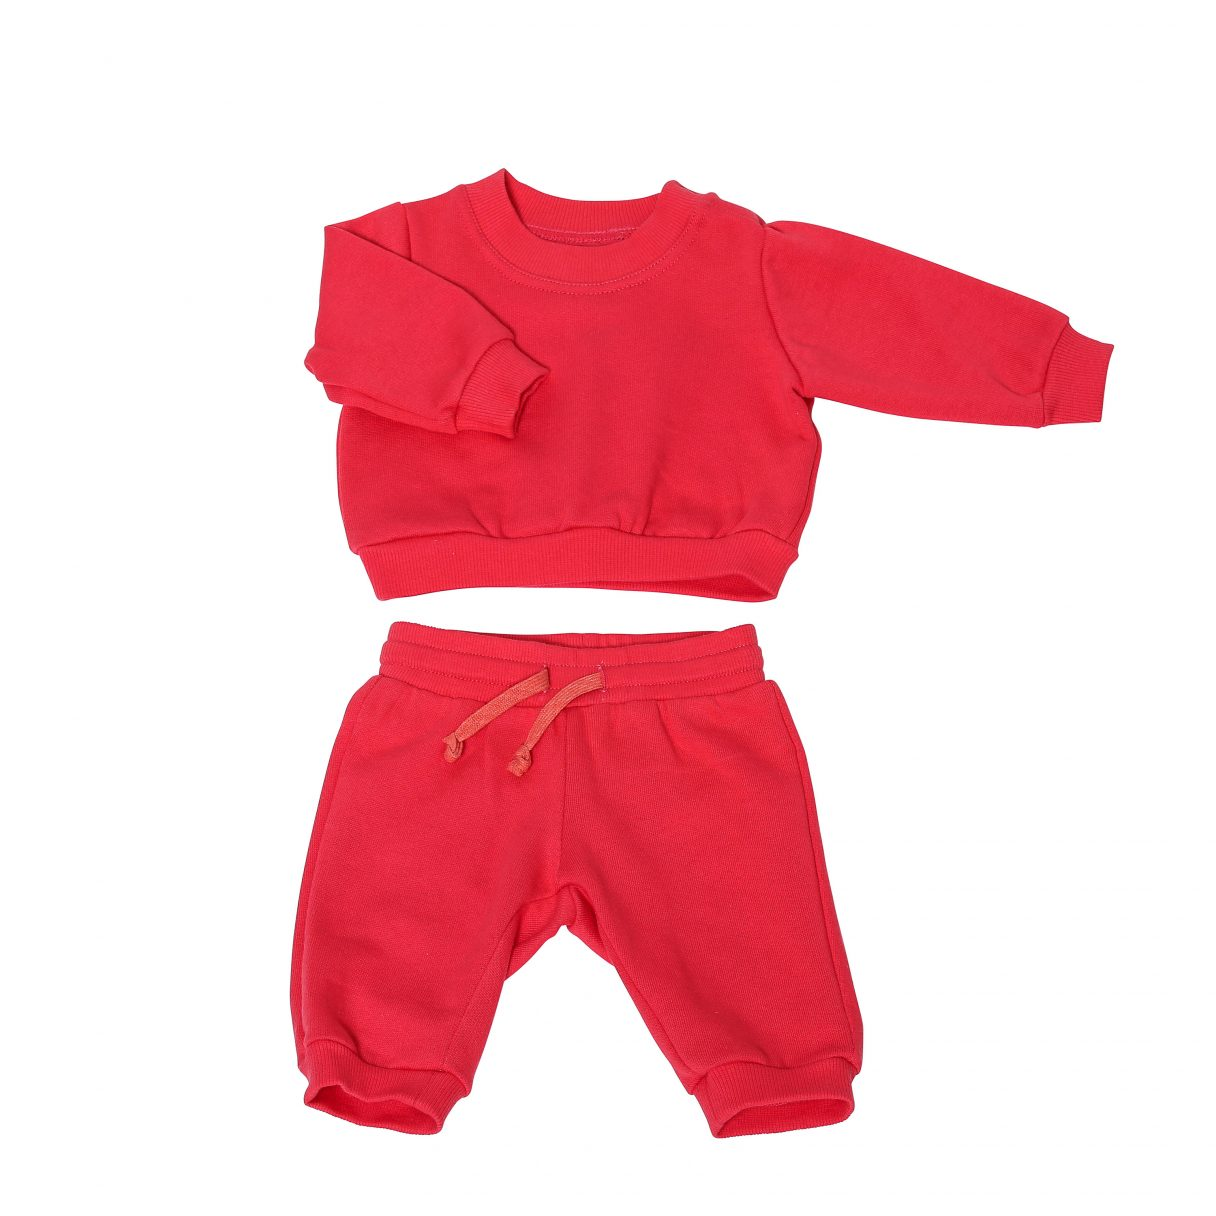 Baby Sweatsuit Organic Cotton Red 2